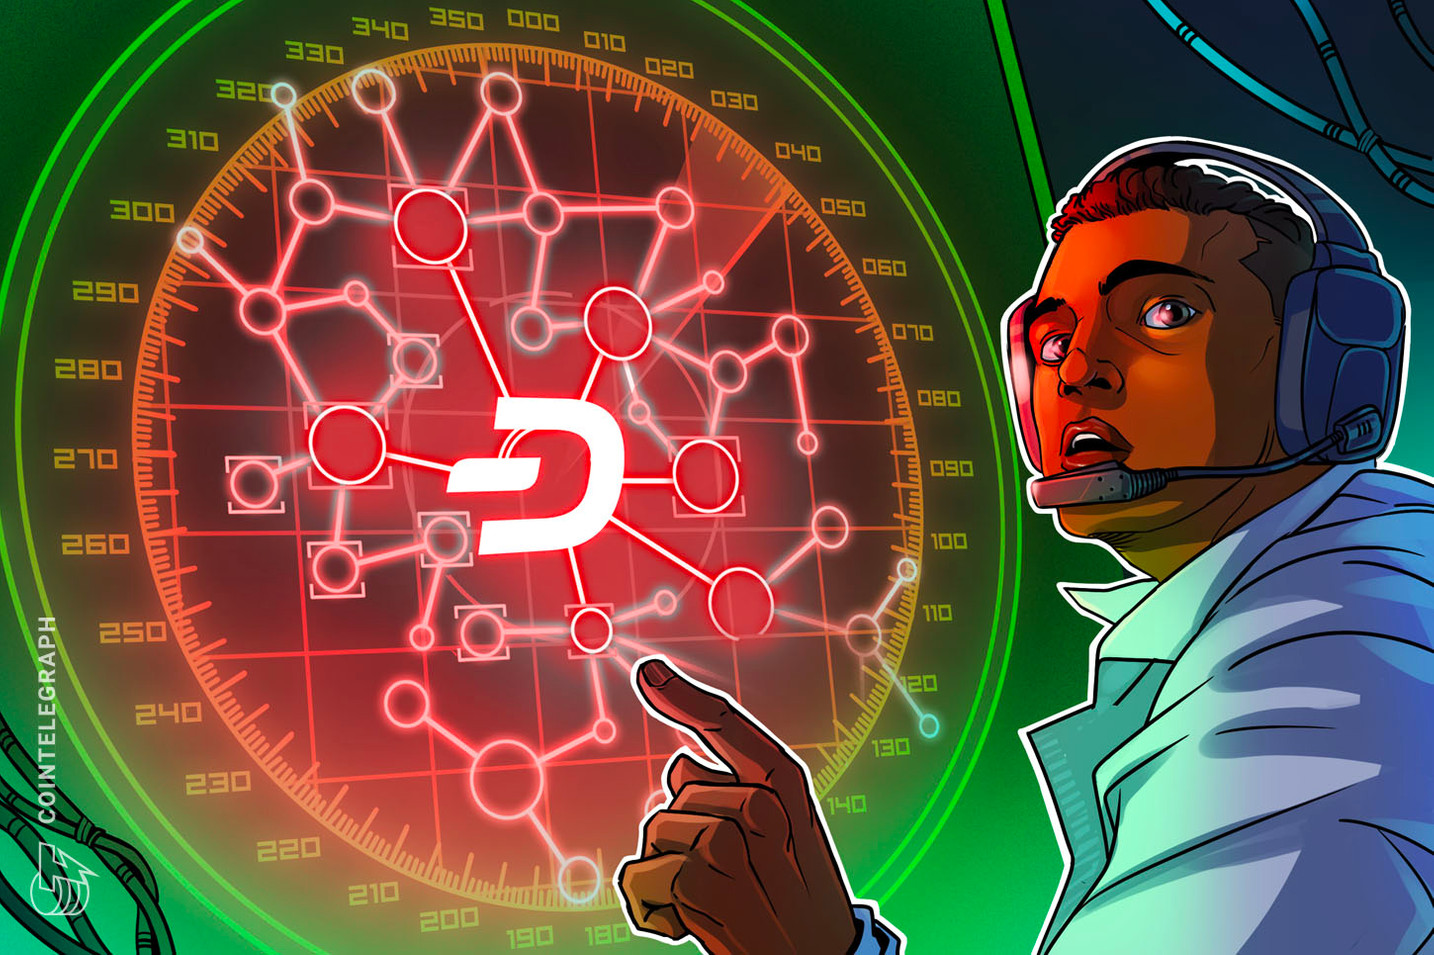 Dash Releases Upgrade In Response to Newly Exposed Vulnerabilities